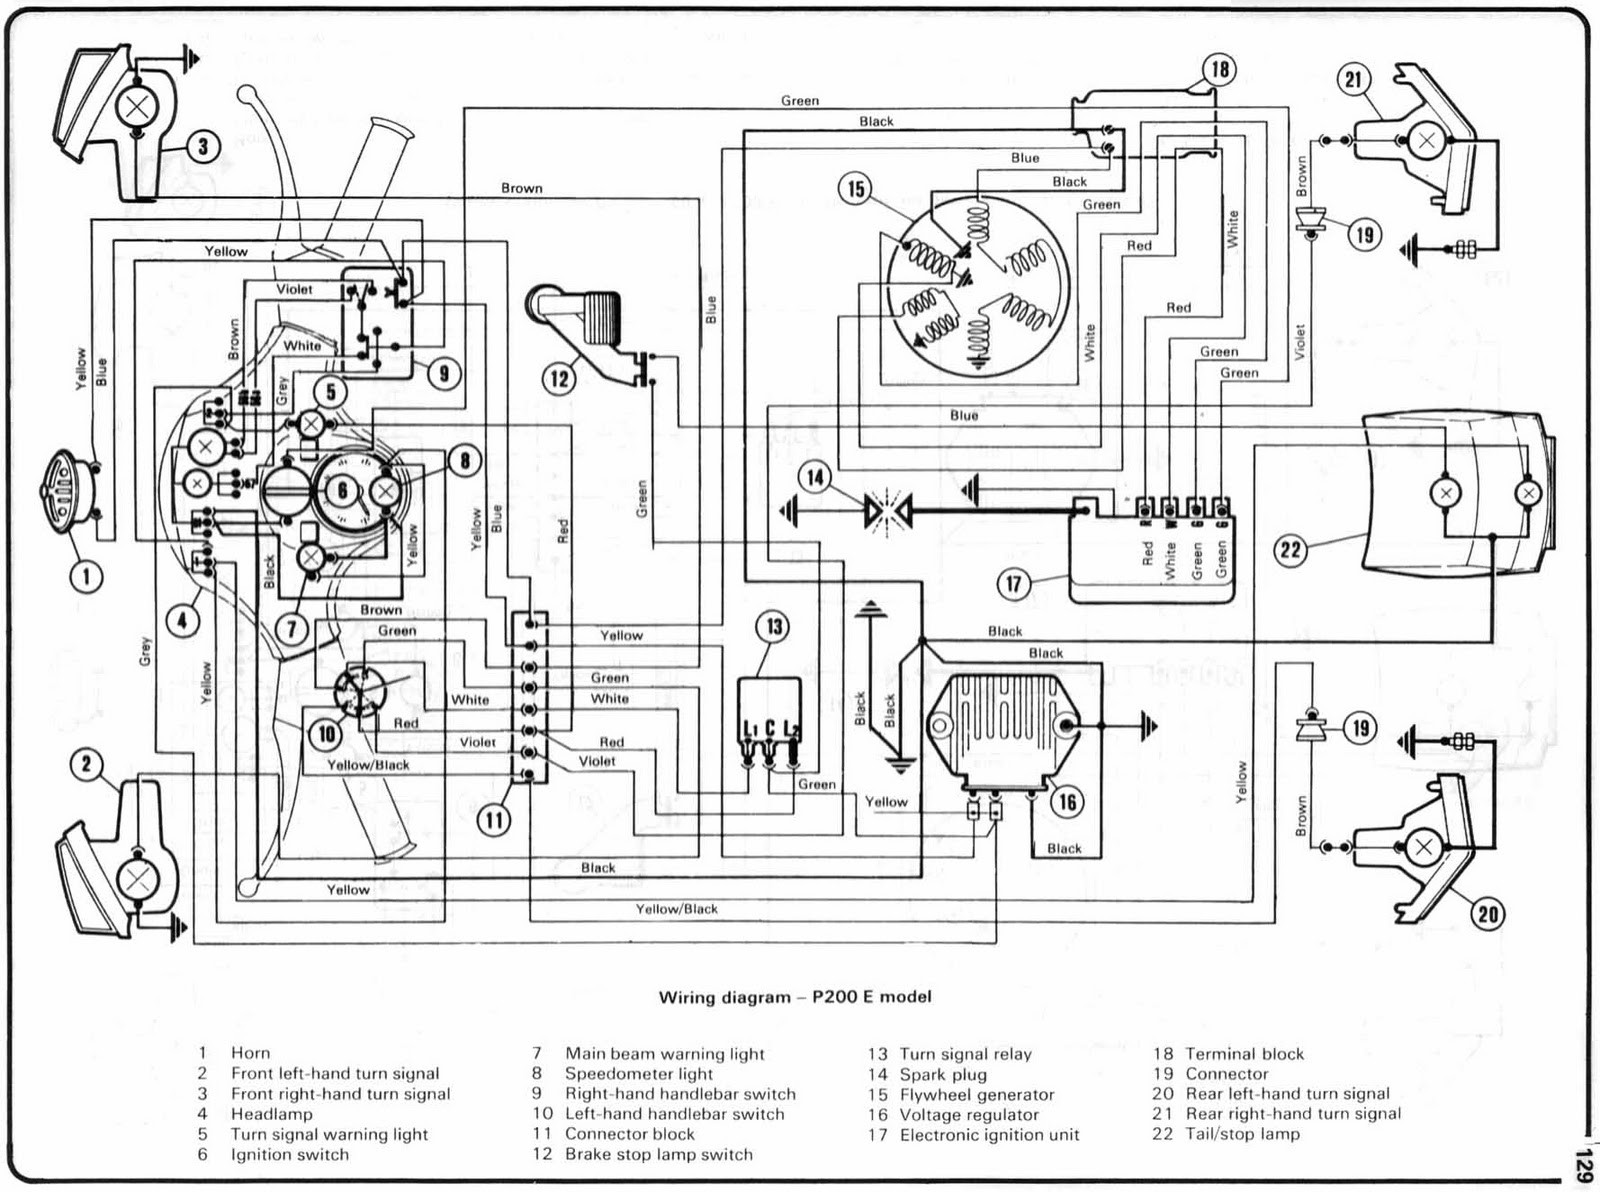 Vespa+P200+E+Model+Wiring+Diagram wiring diagrams 911 vespa p200 e model wiring diagram vespa wiring diagram p200e at bayanpartner.co